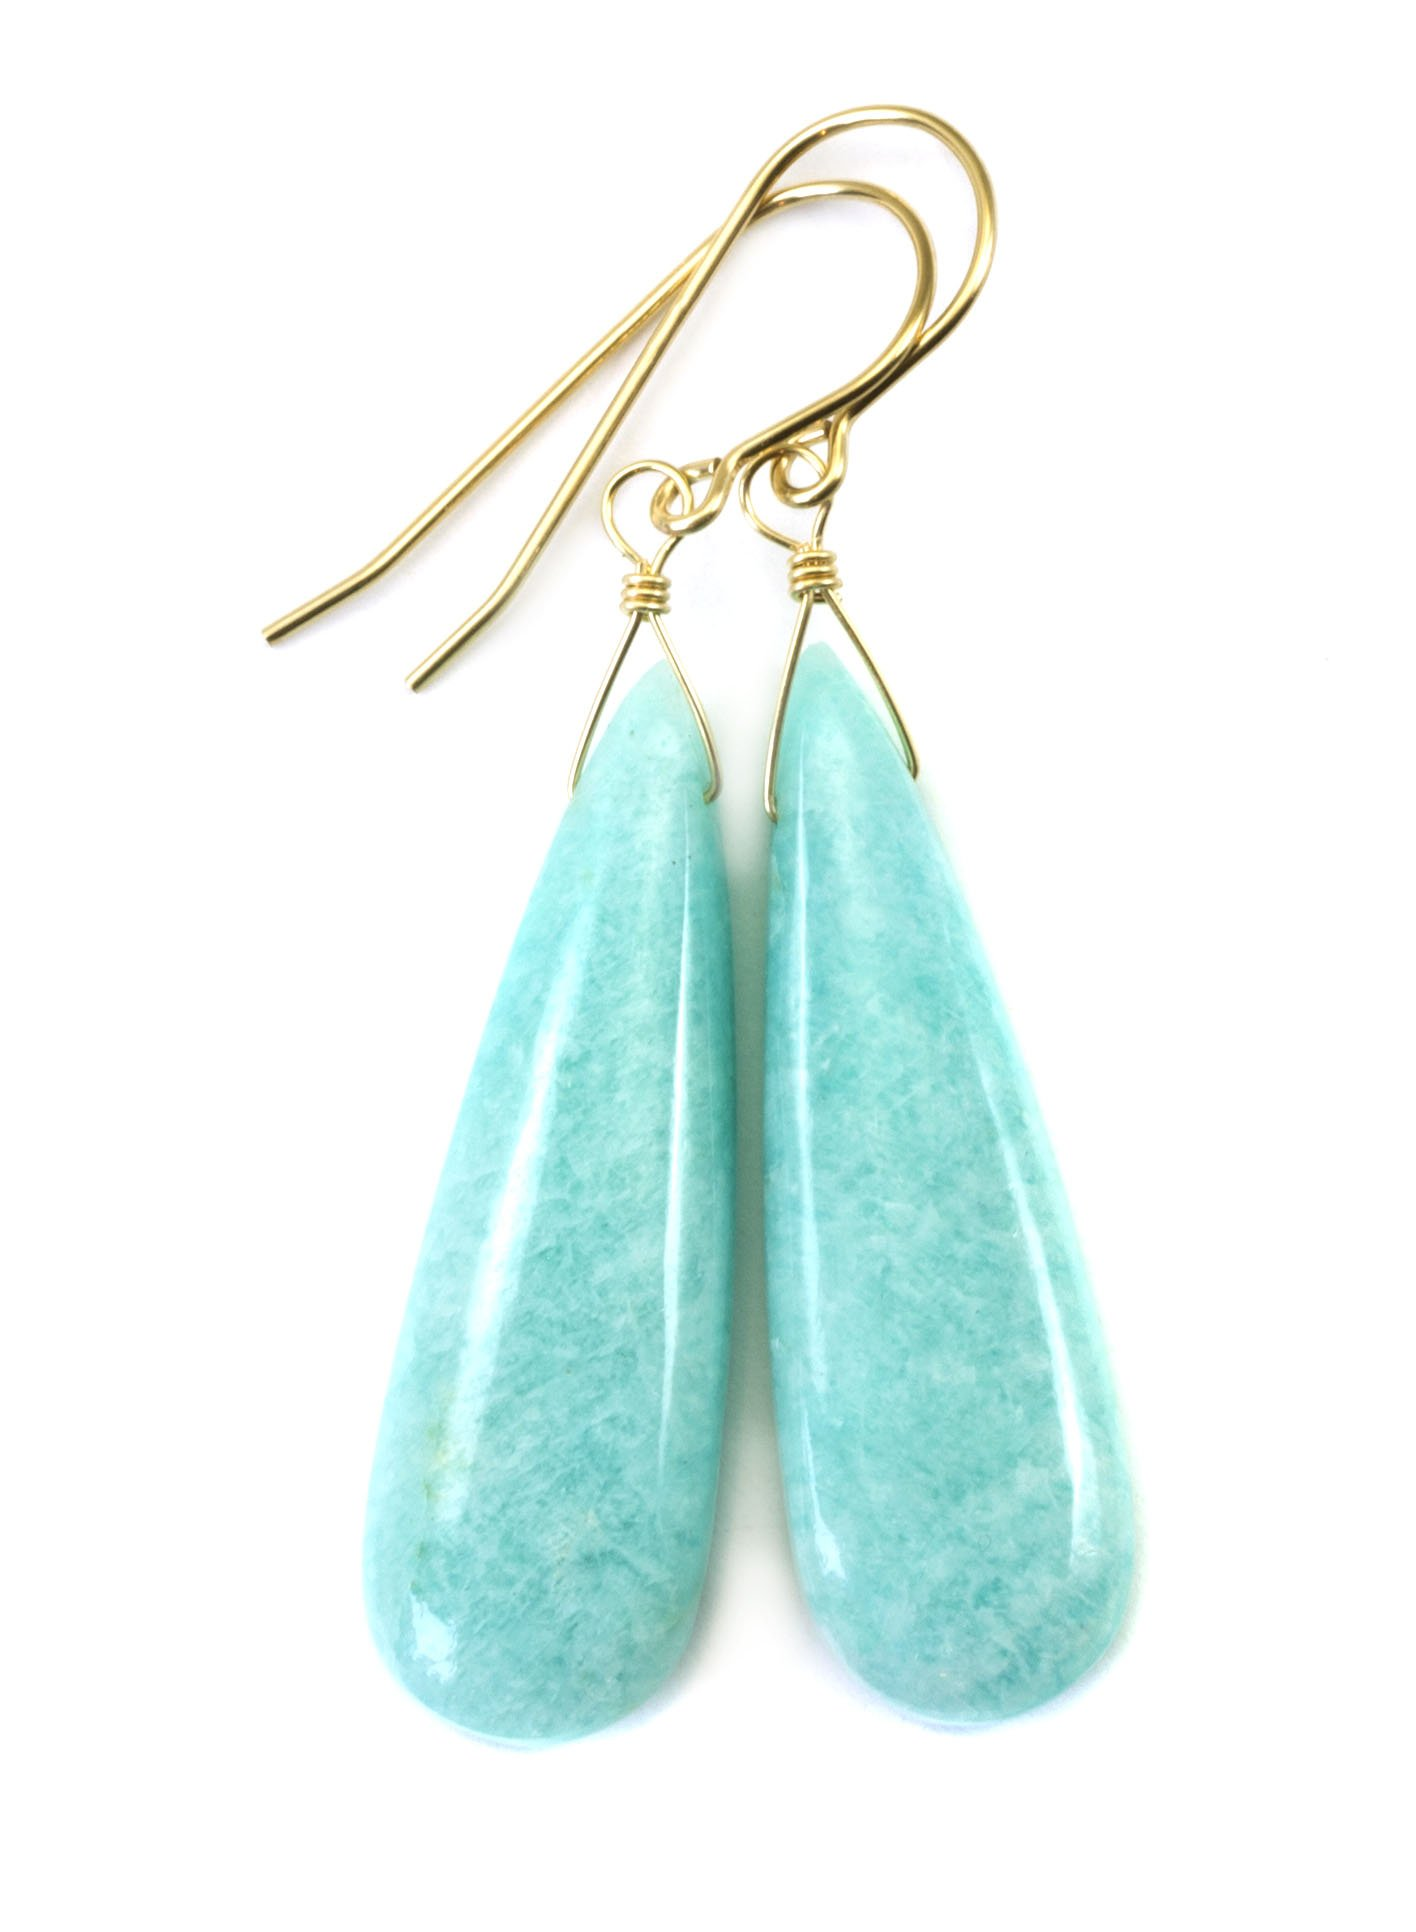 14k Yellow Gold Amazonite Earrings Long Smooth Light Blue Teardrops Simple Contemporary Drops